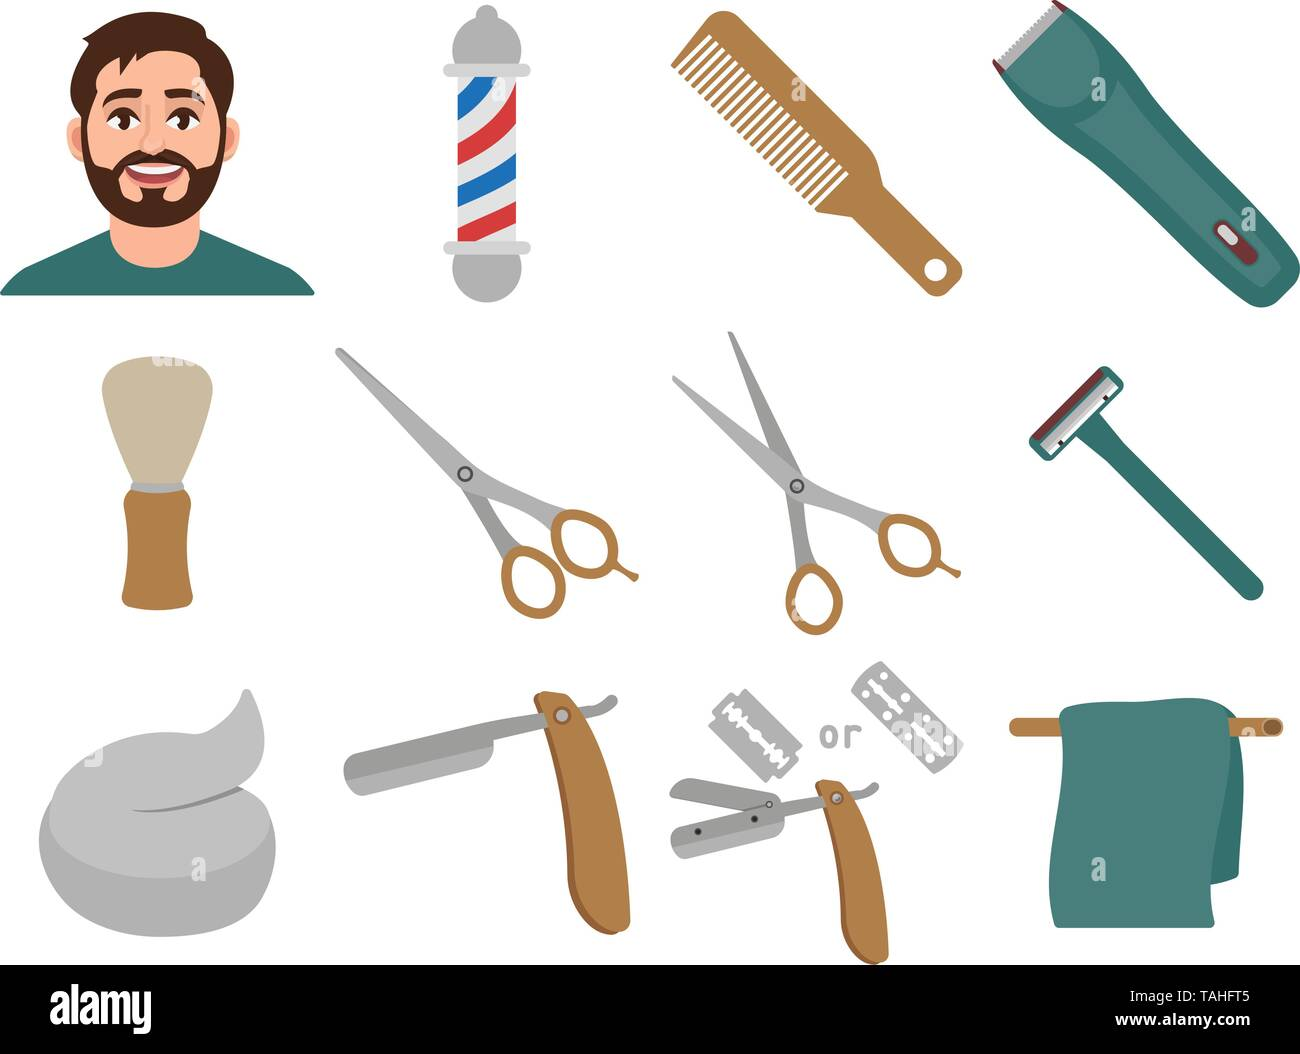 Barber Shop set of icons in cartoon style, haircut and shave, shavette, barber pole, hair clipper, etc. vector illustration - Stock Image